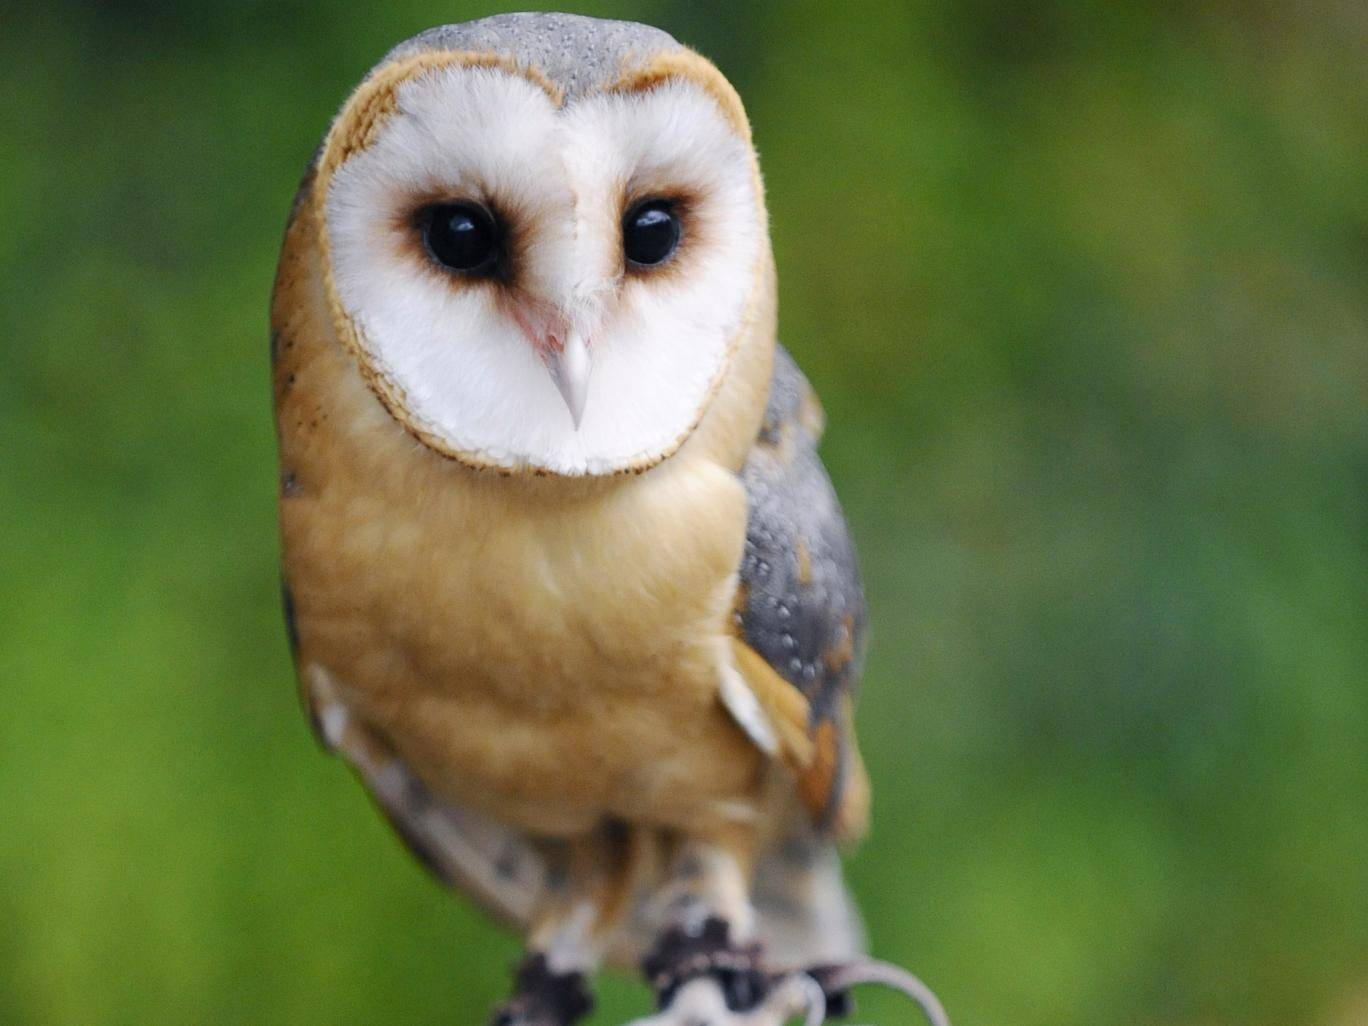 Man admits keeping owl heads in jam jars so he could sell them to pagans https://t.co/yeAx8B6cil https://t.co/dgPYqDprJx